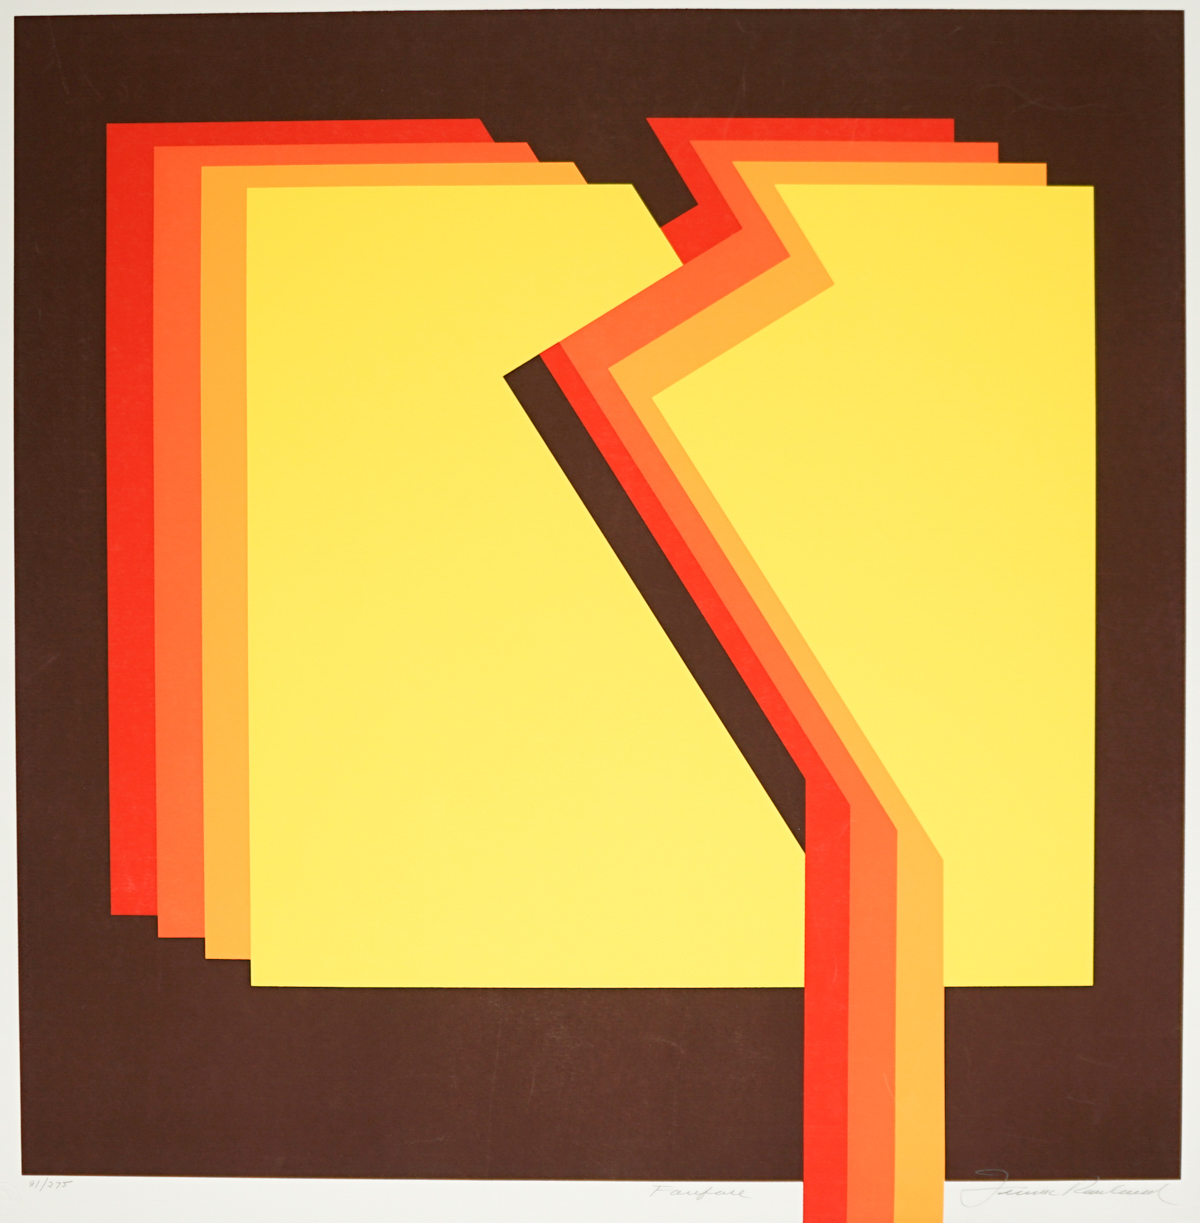 Frank Rowland Serigraph [Abstract]